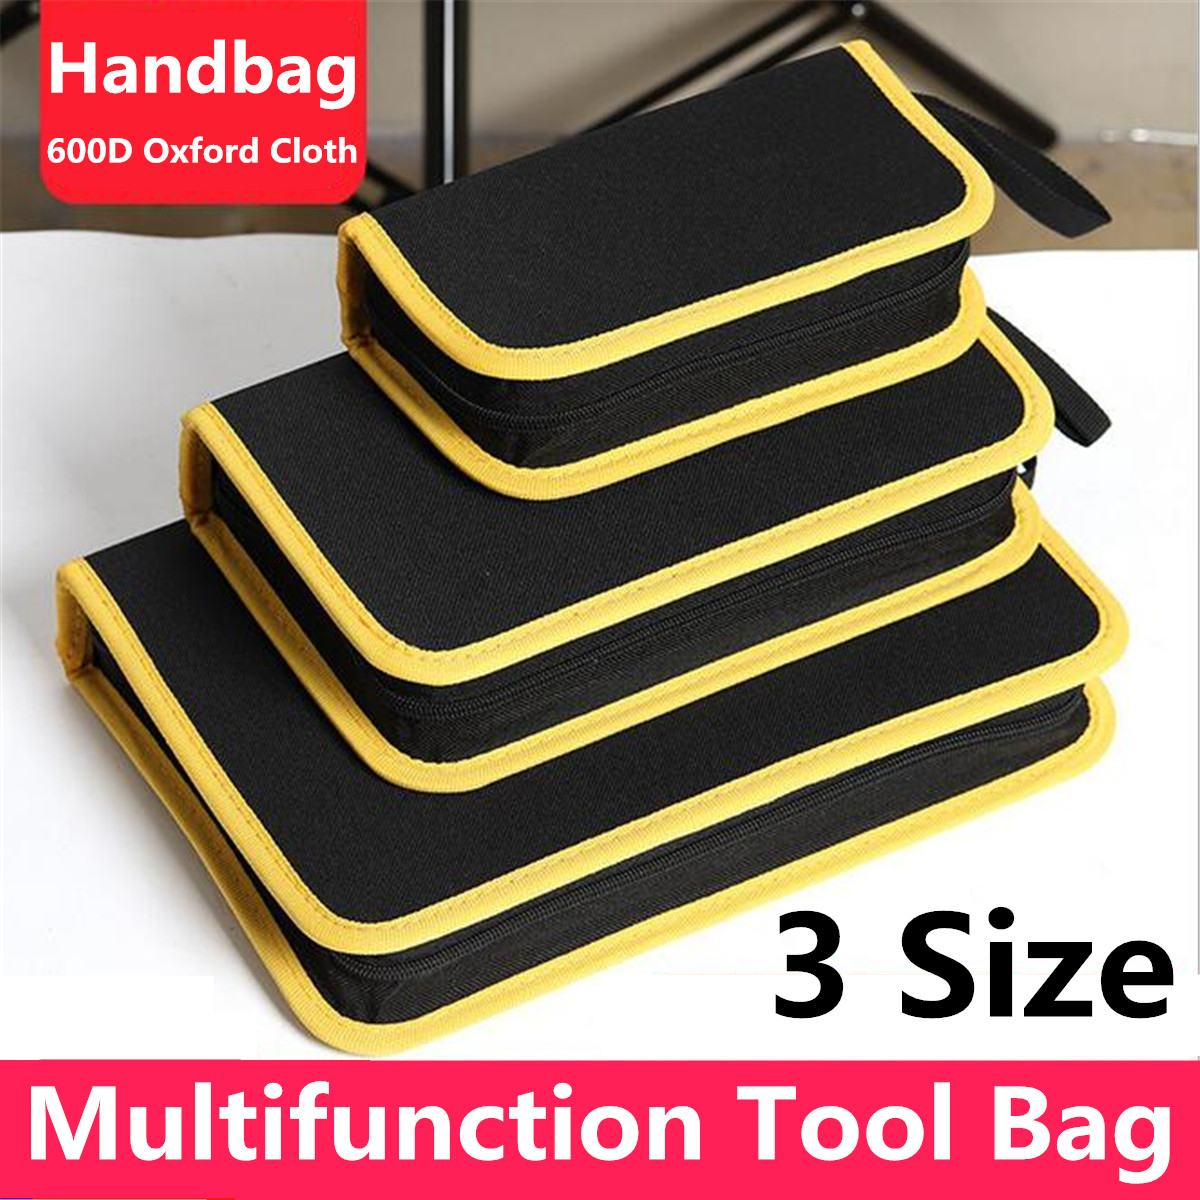 S/M/L Multi-Pockets Roll Up Tool Bag Storage Bags Spanner Plier Wrench Organizer Hardware DIY Tools Accessory